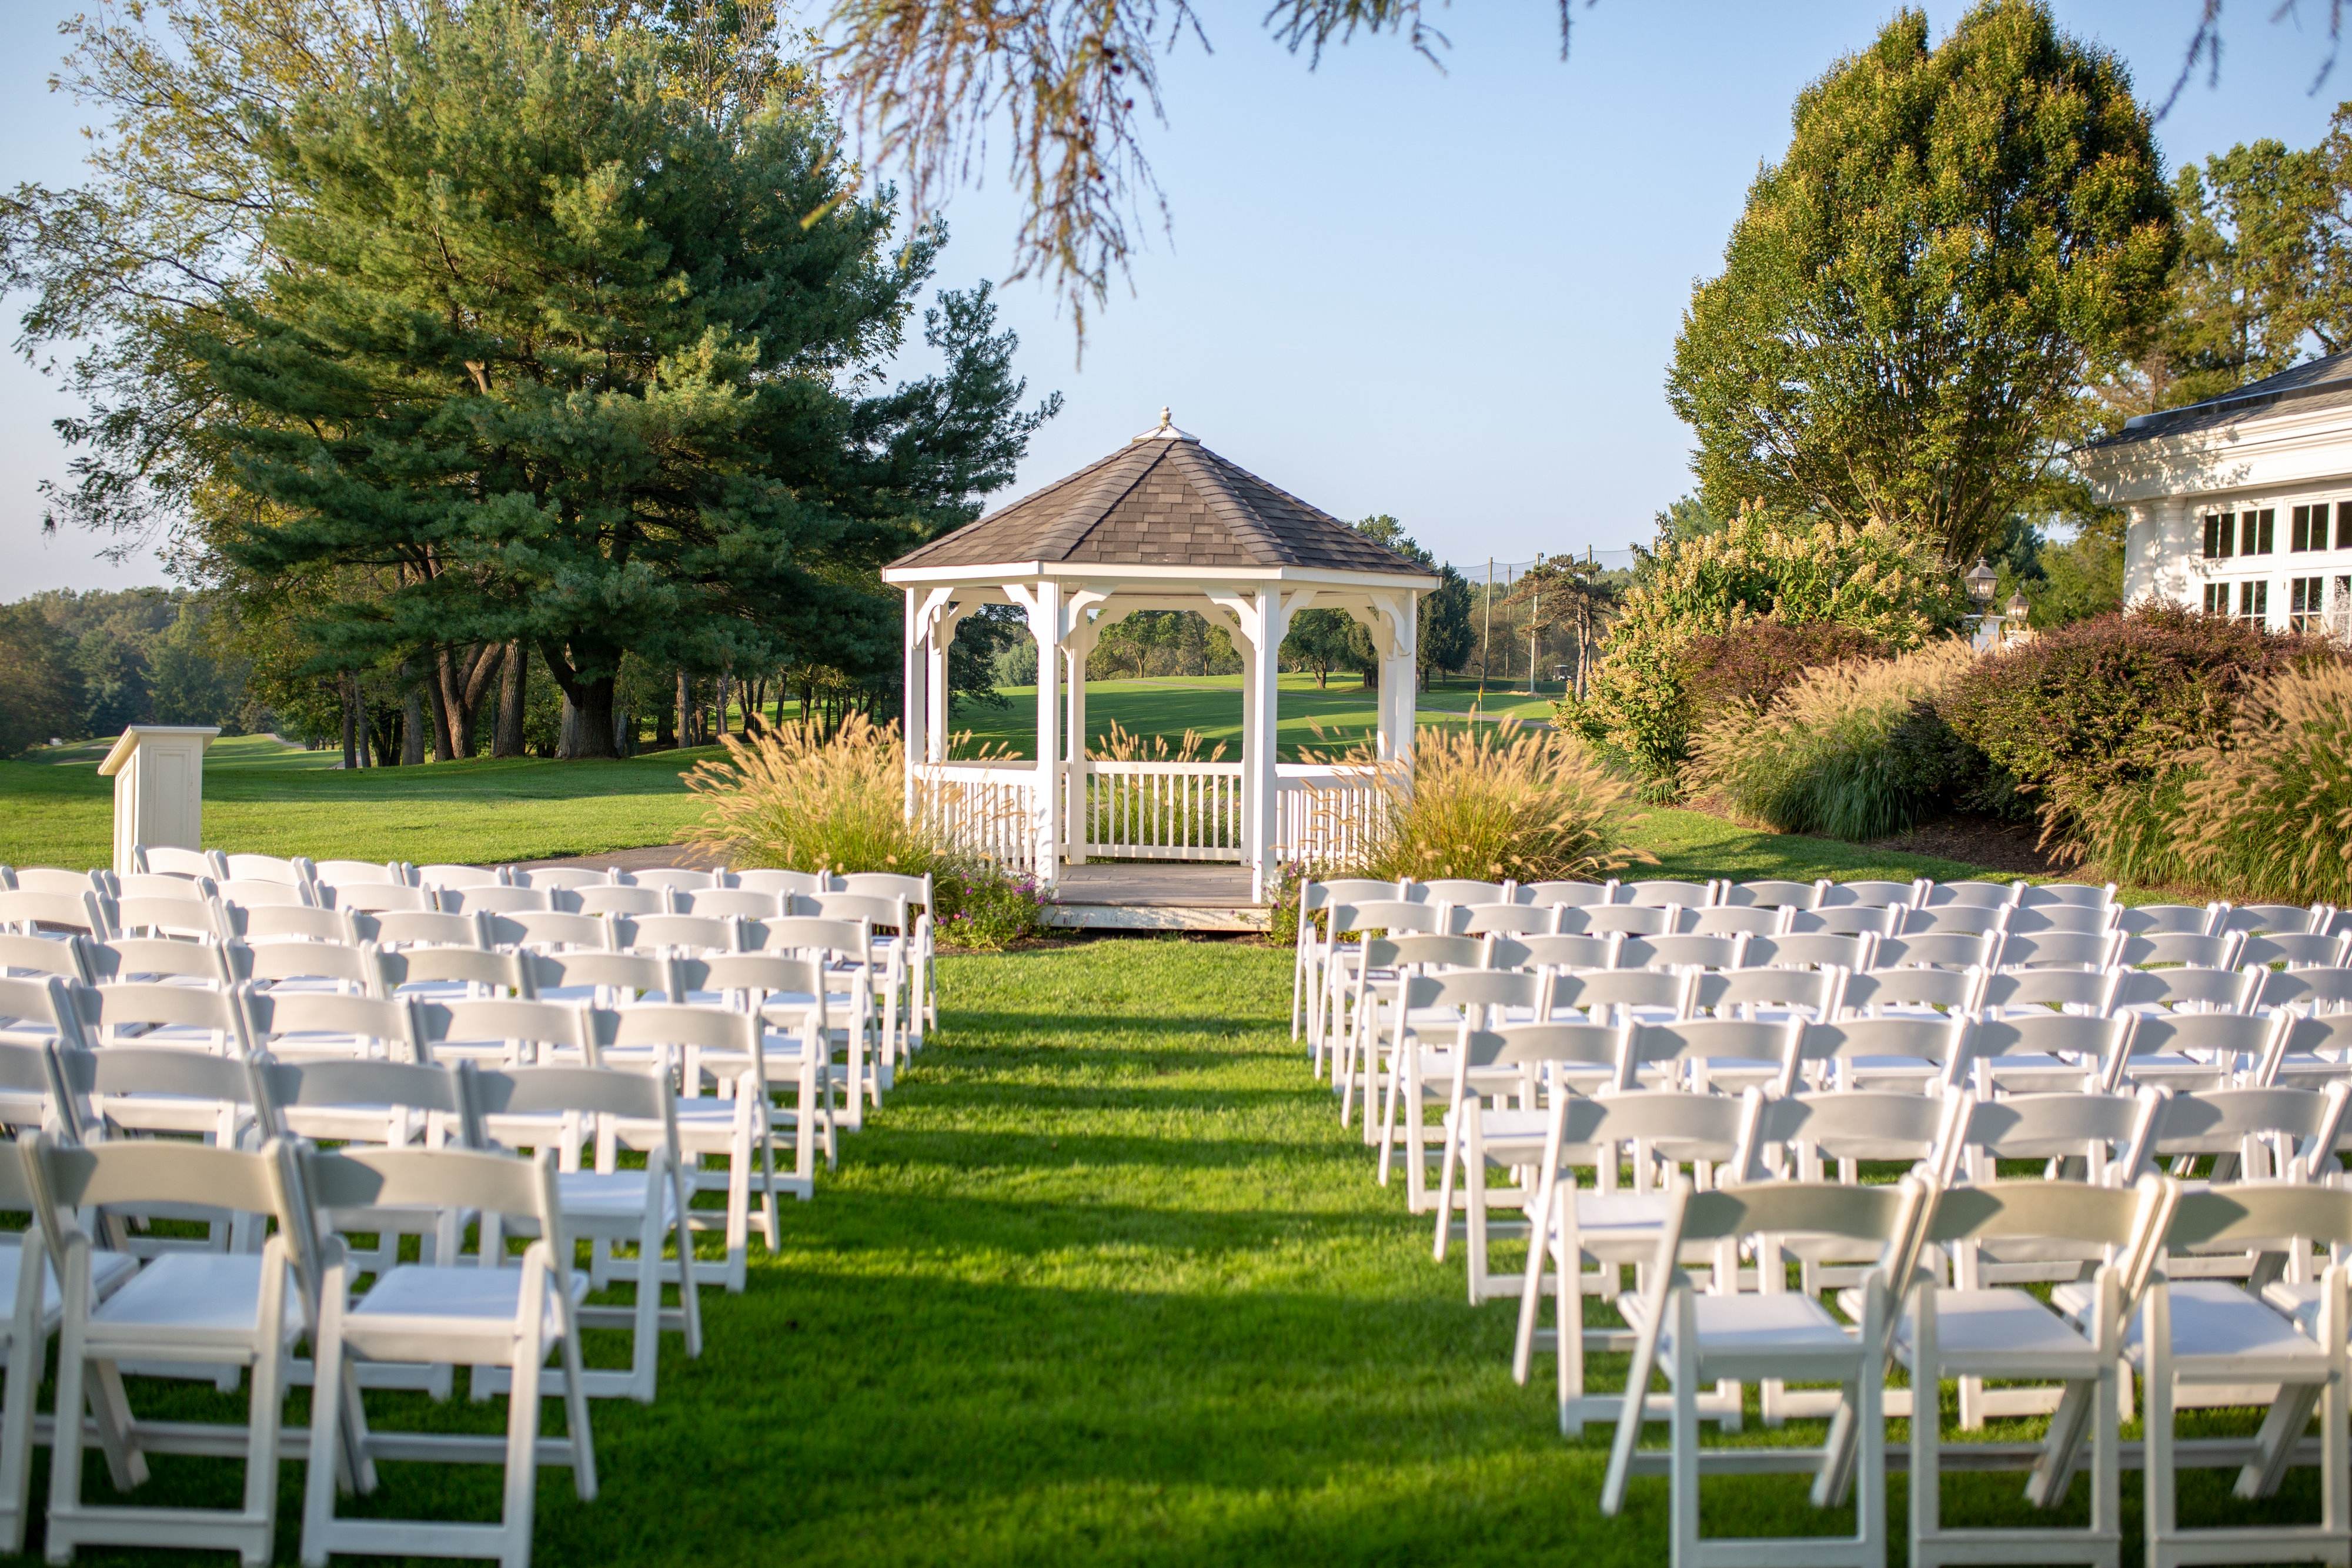 The Top 5 Expected Wedding Trends for 2021